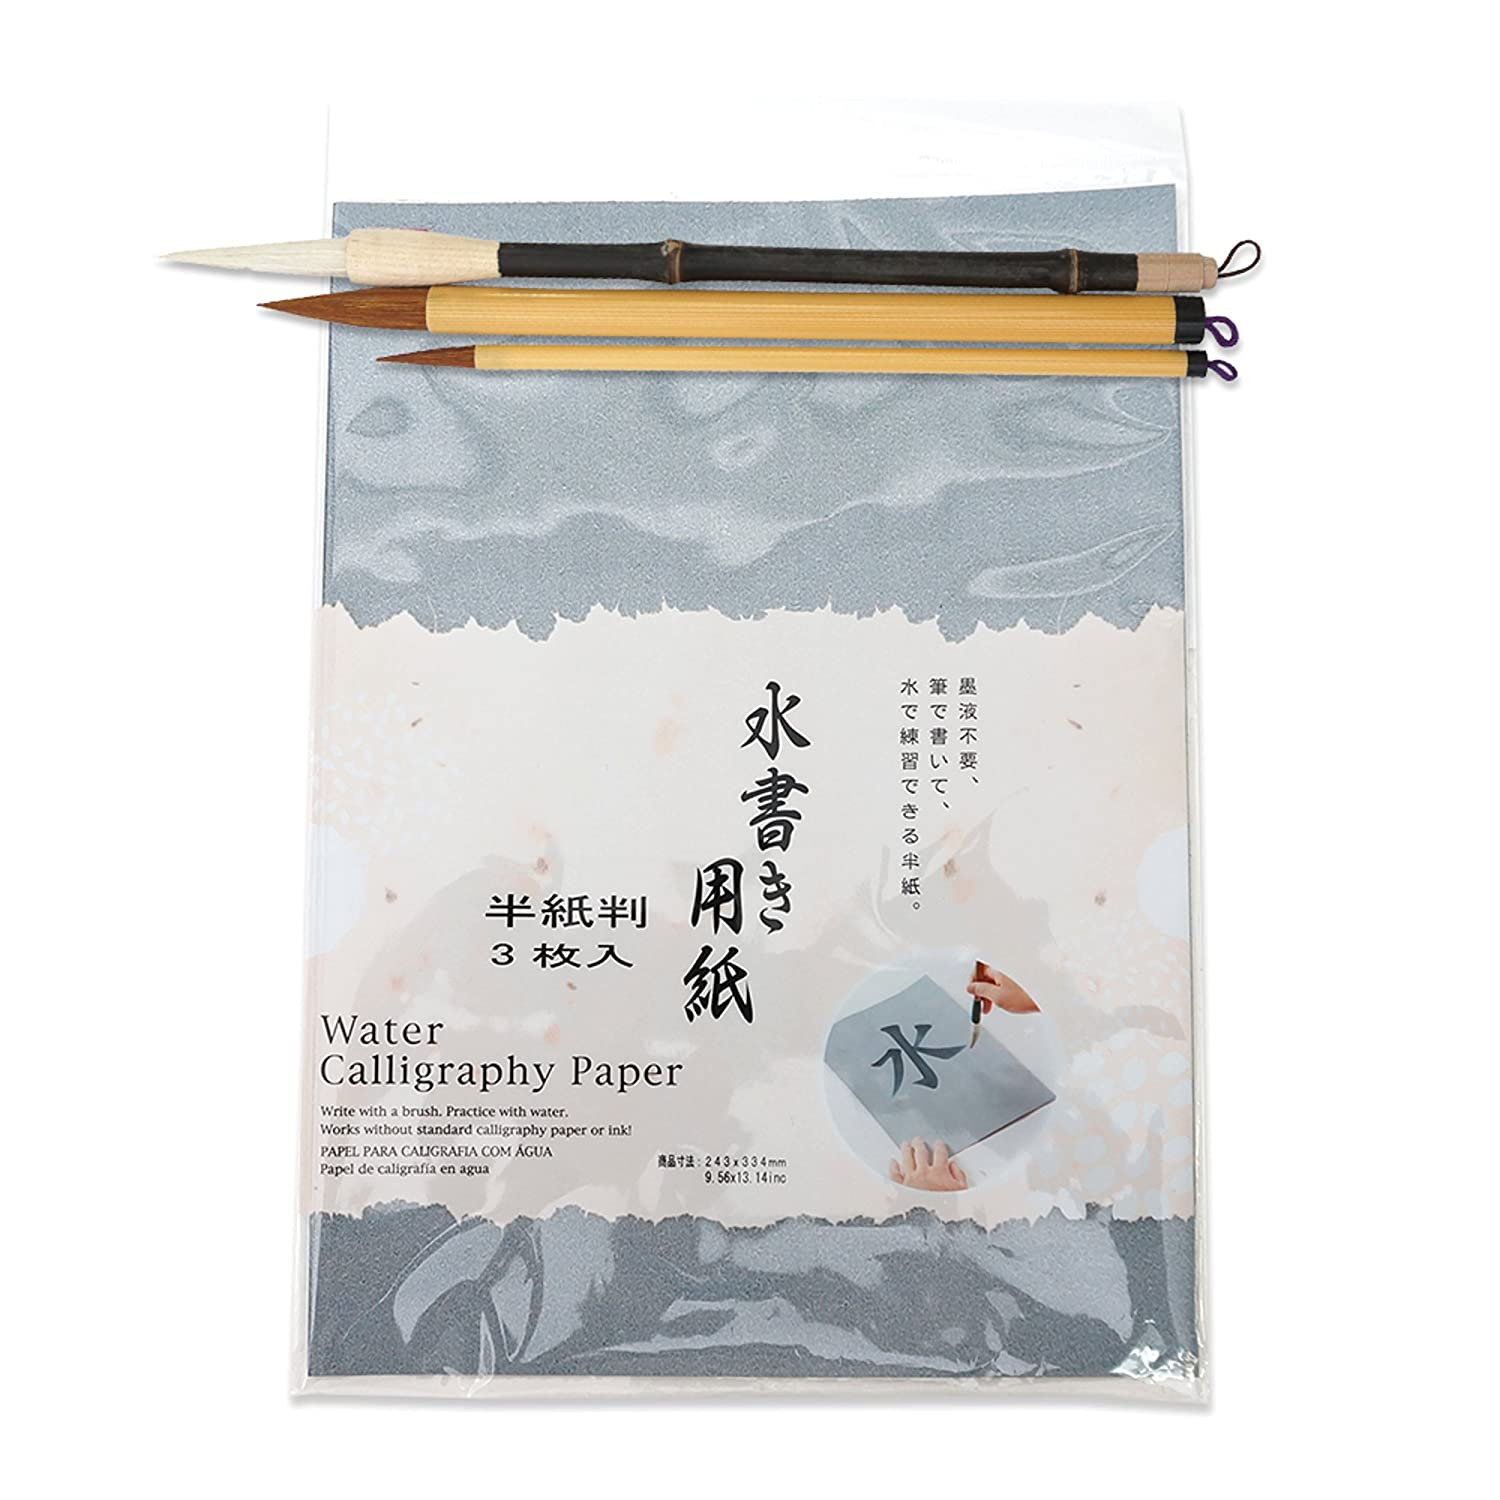 Sumi Calligraphy Water Calligraphy practice Paper, Drawing Brush×3 set import by JAPANESE cool items store daiso